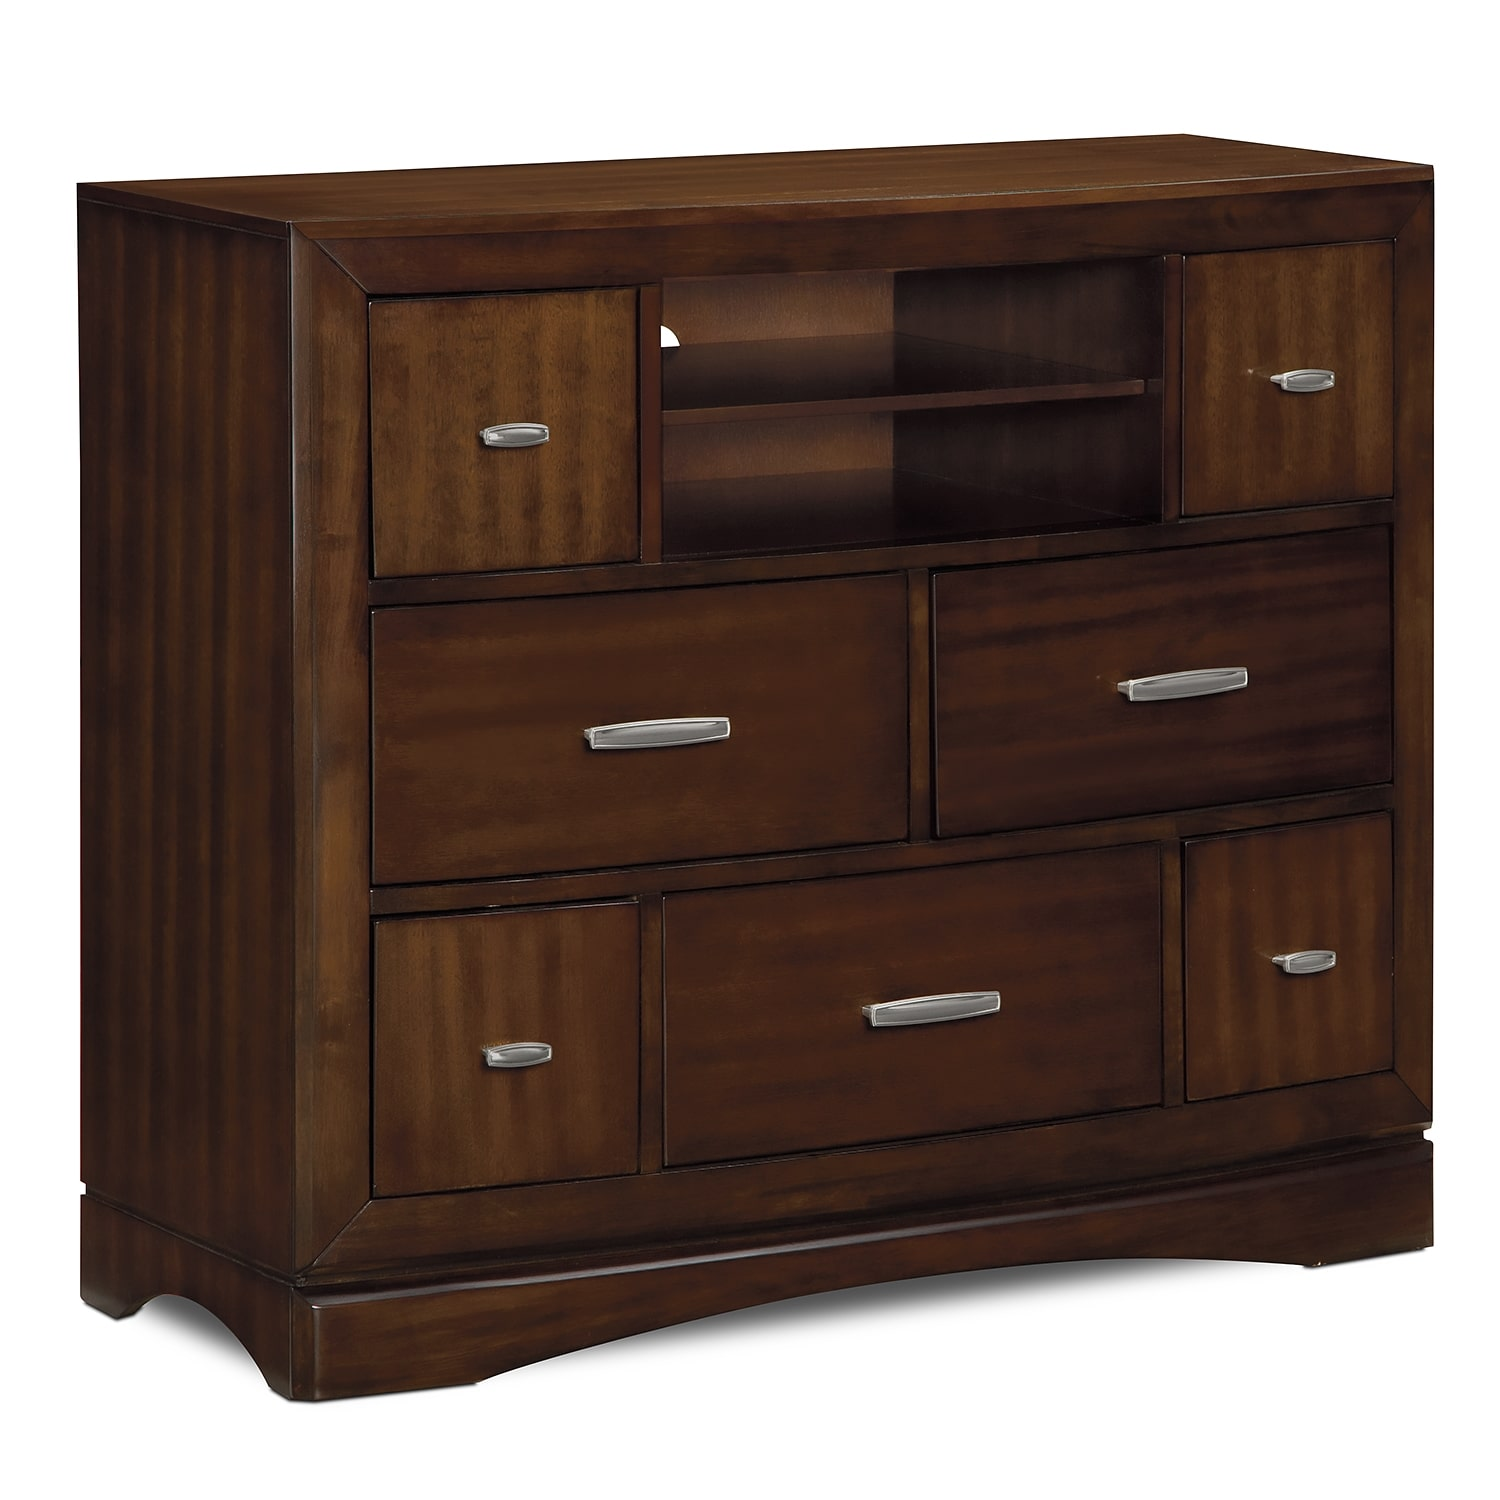 toronto media chest pecan value city furniture. Black Bedroom Furniture Sets. Home Design Ideas